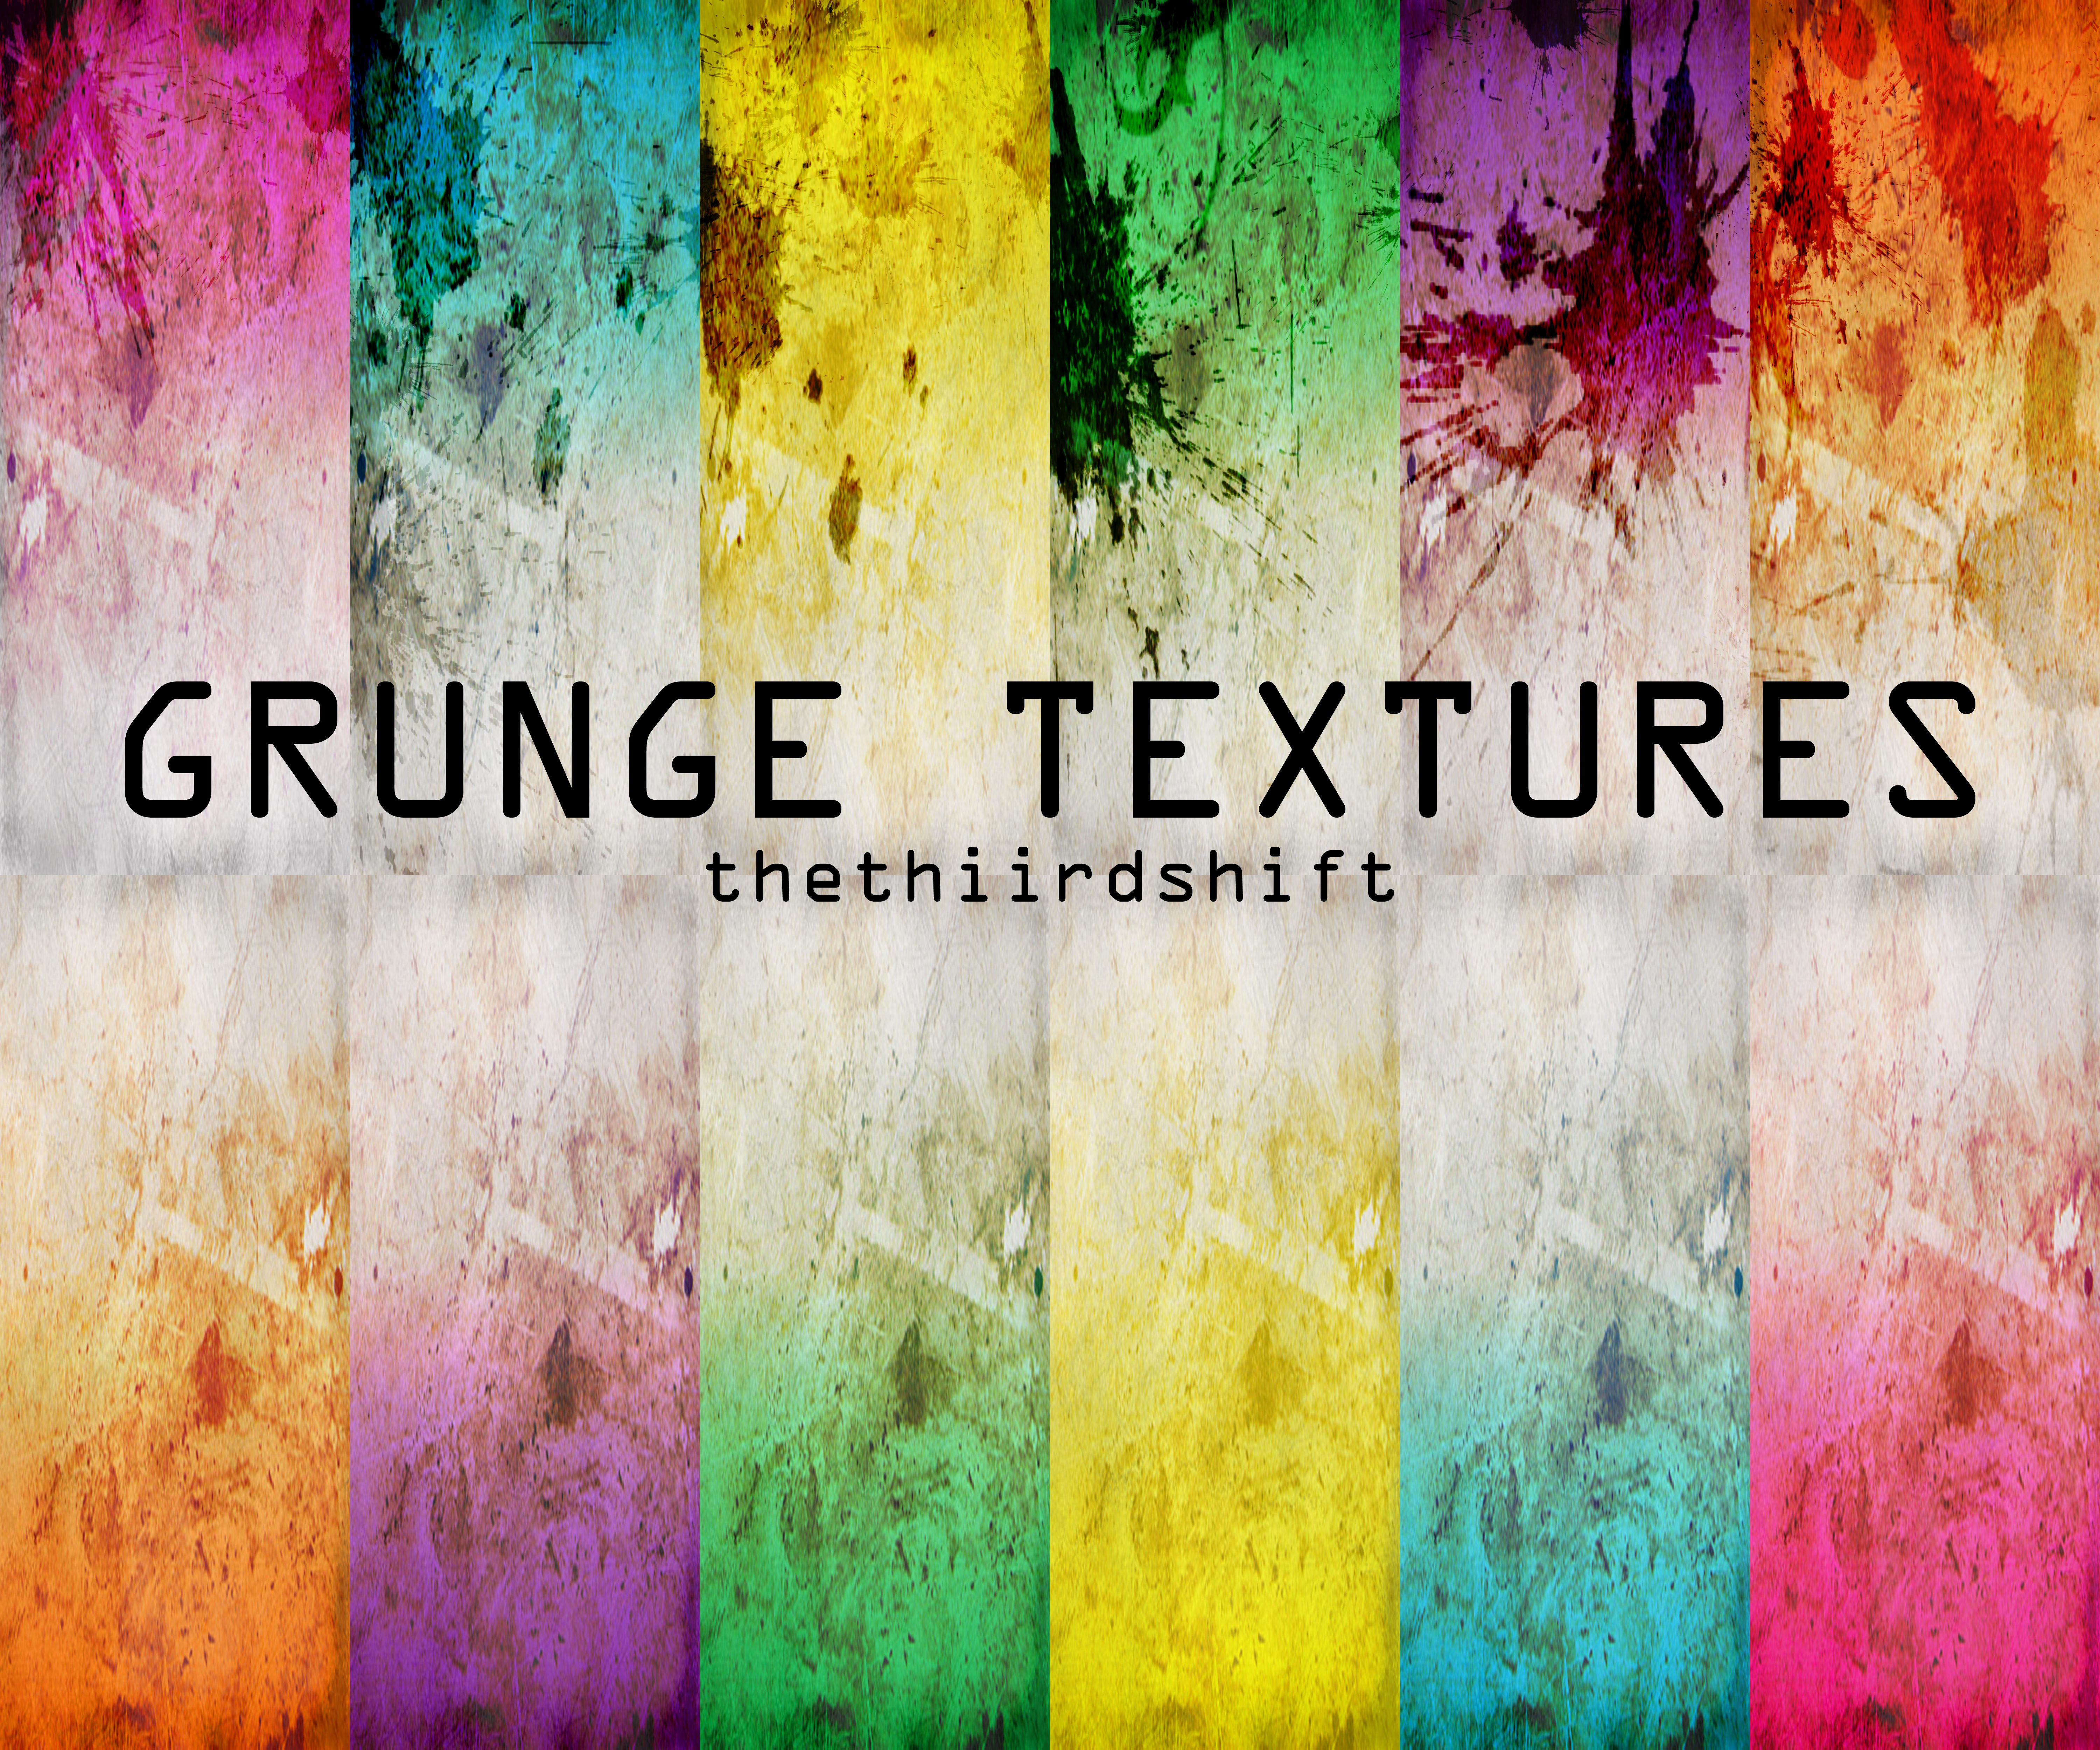 Grunge textures by thethiirdshift